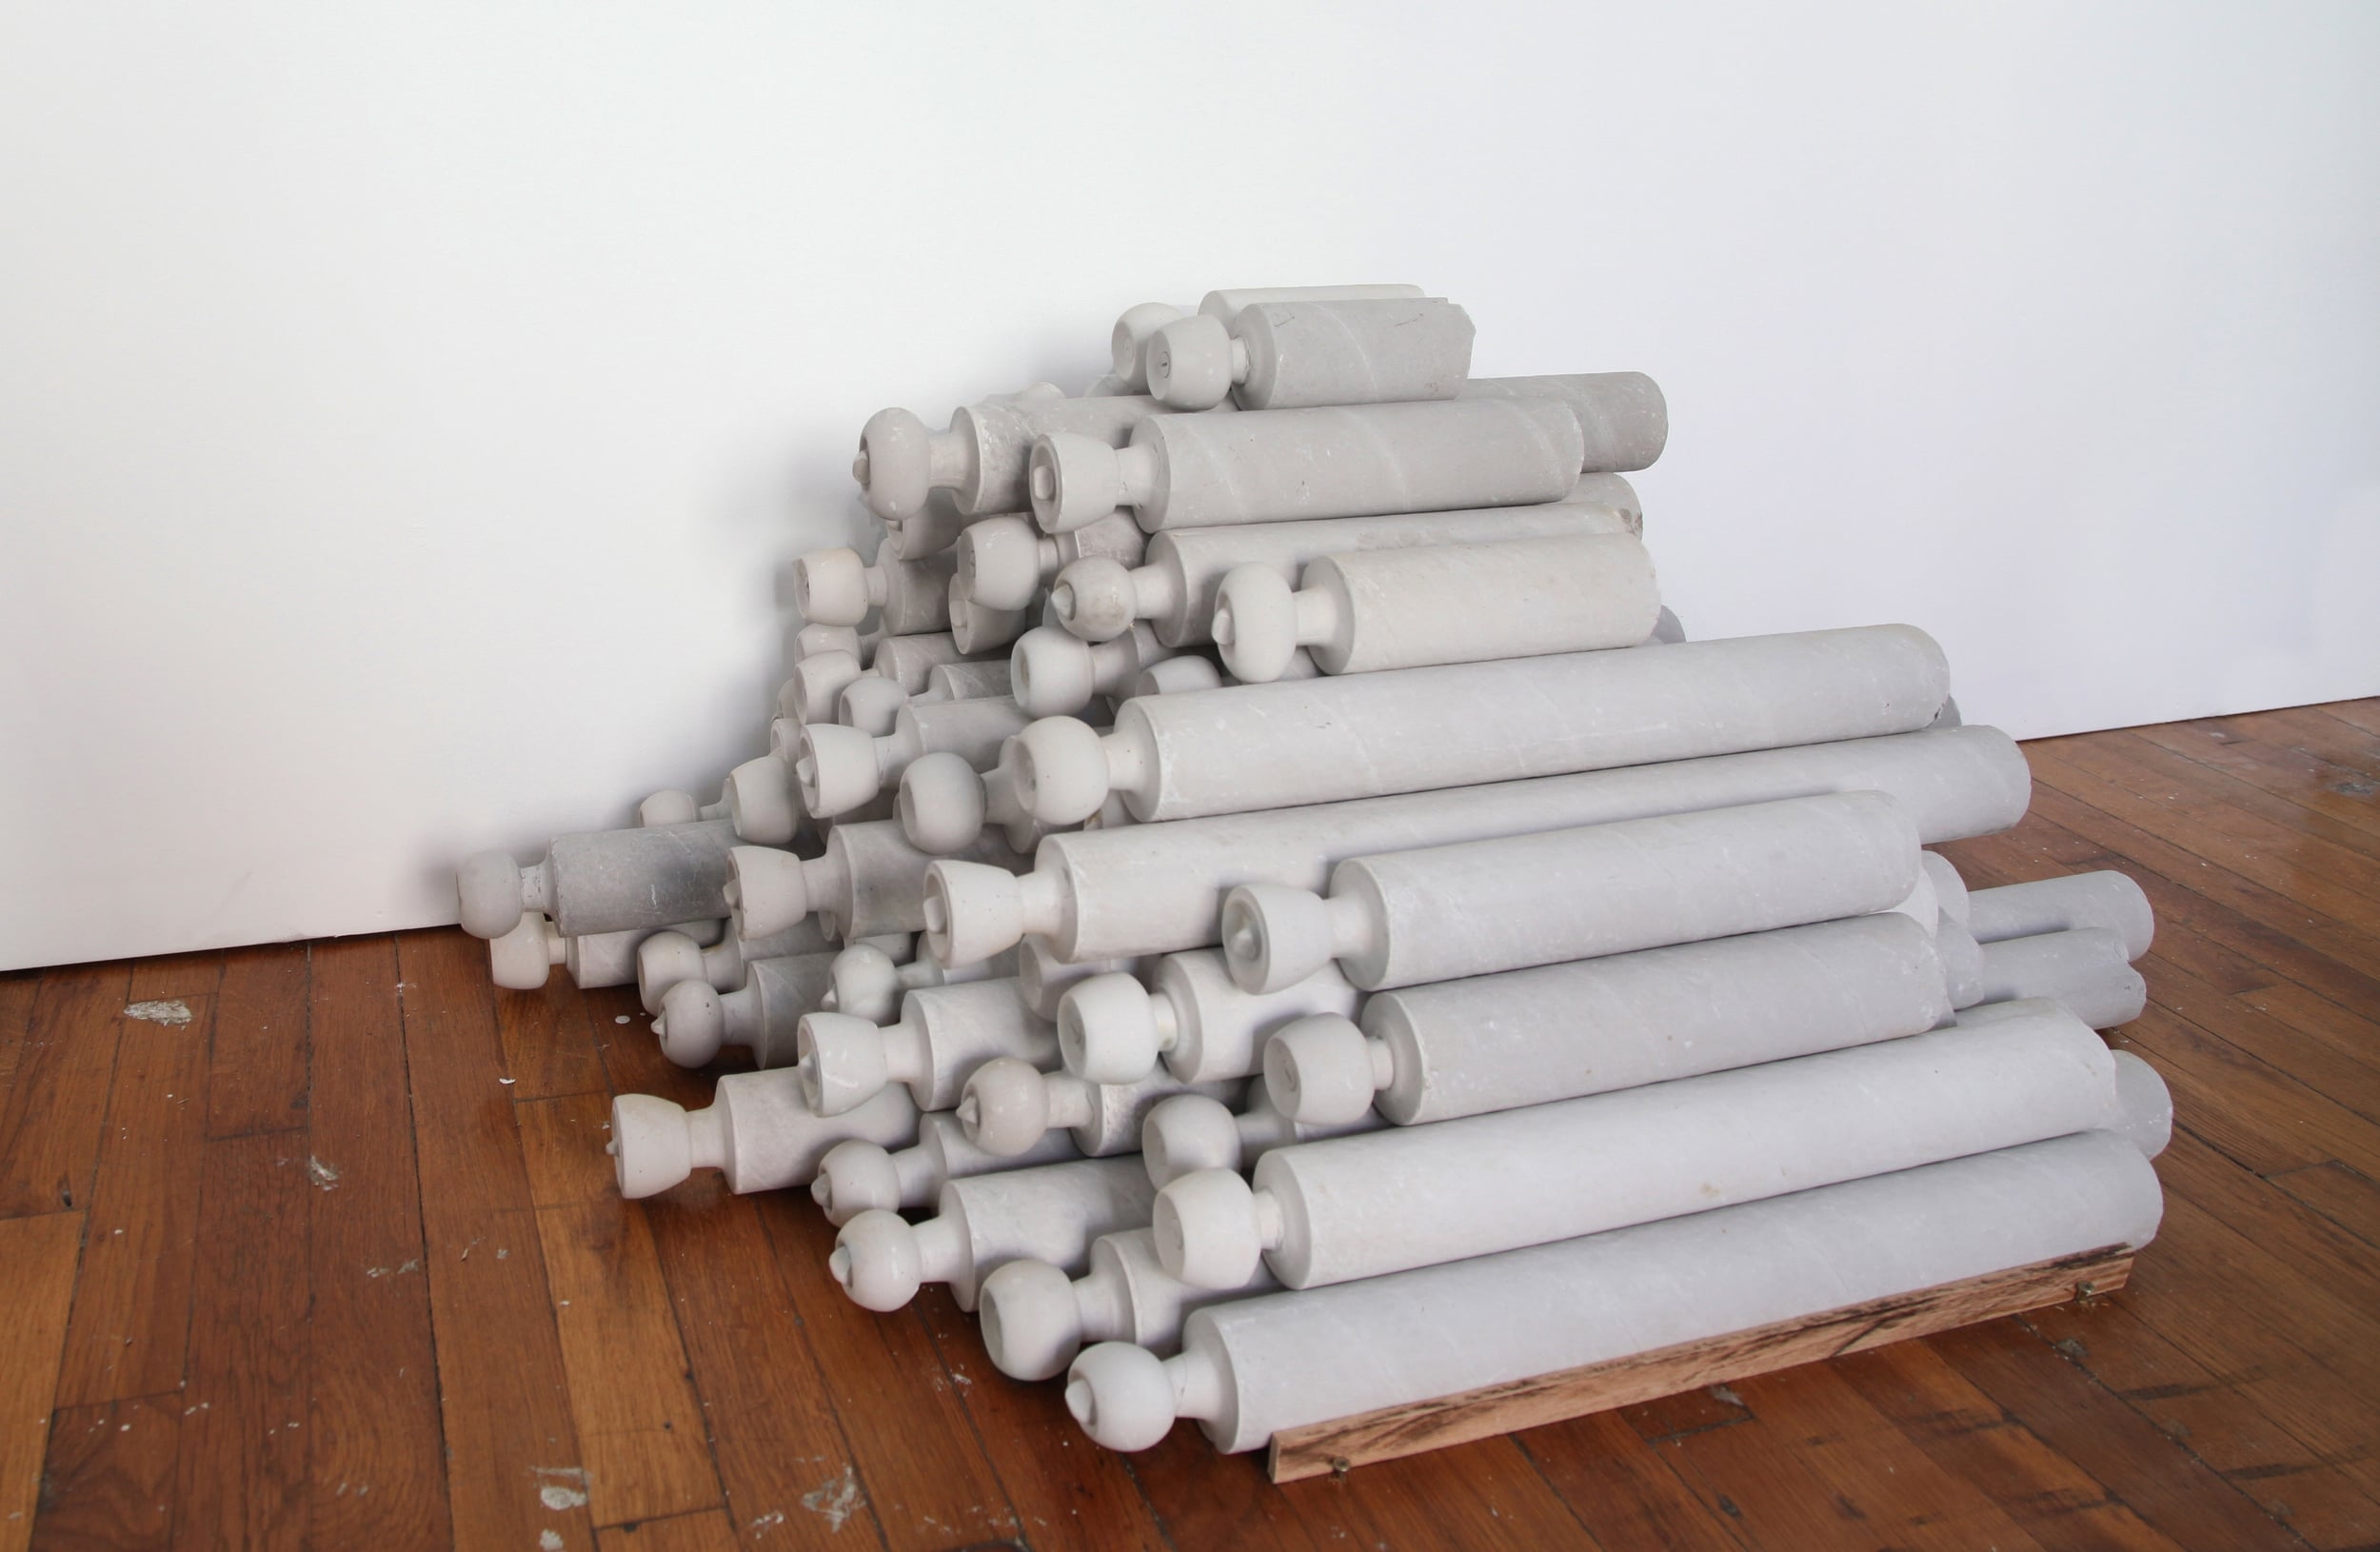 Untitled (knobs), 2013 plaster, 45 x 37 x 32 in